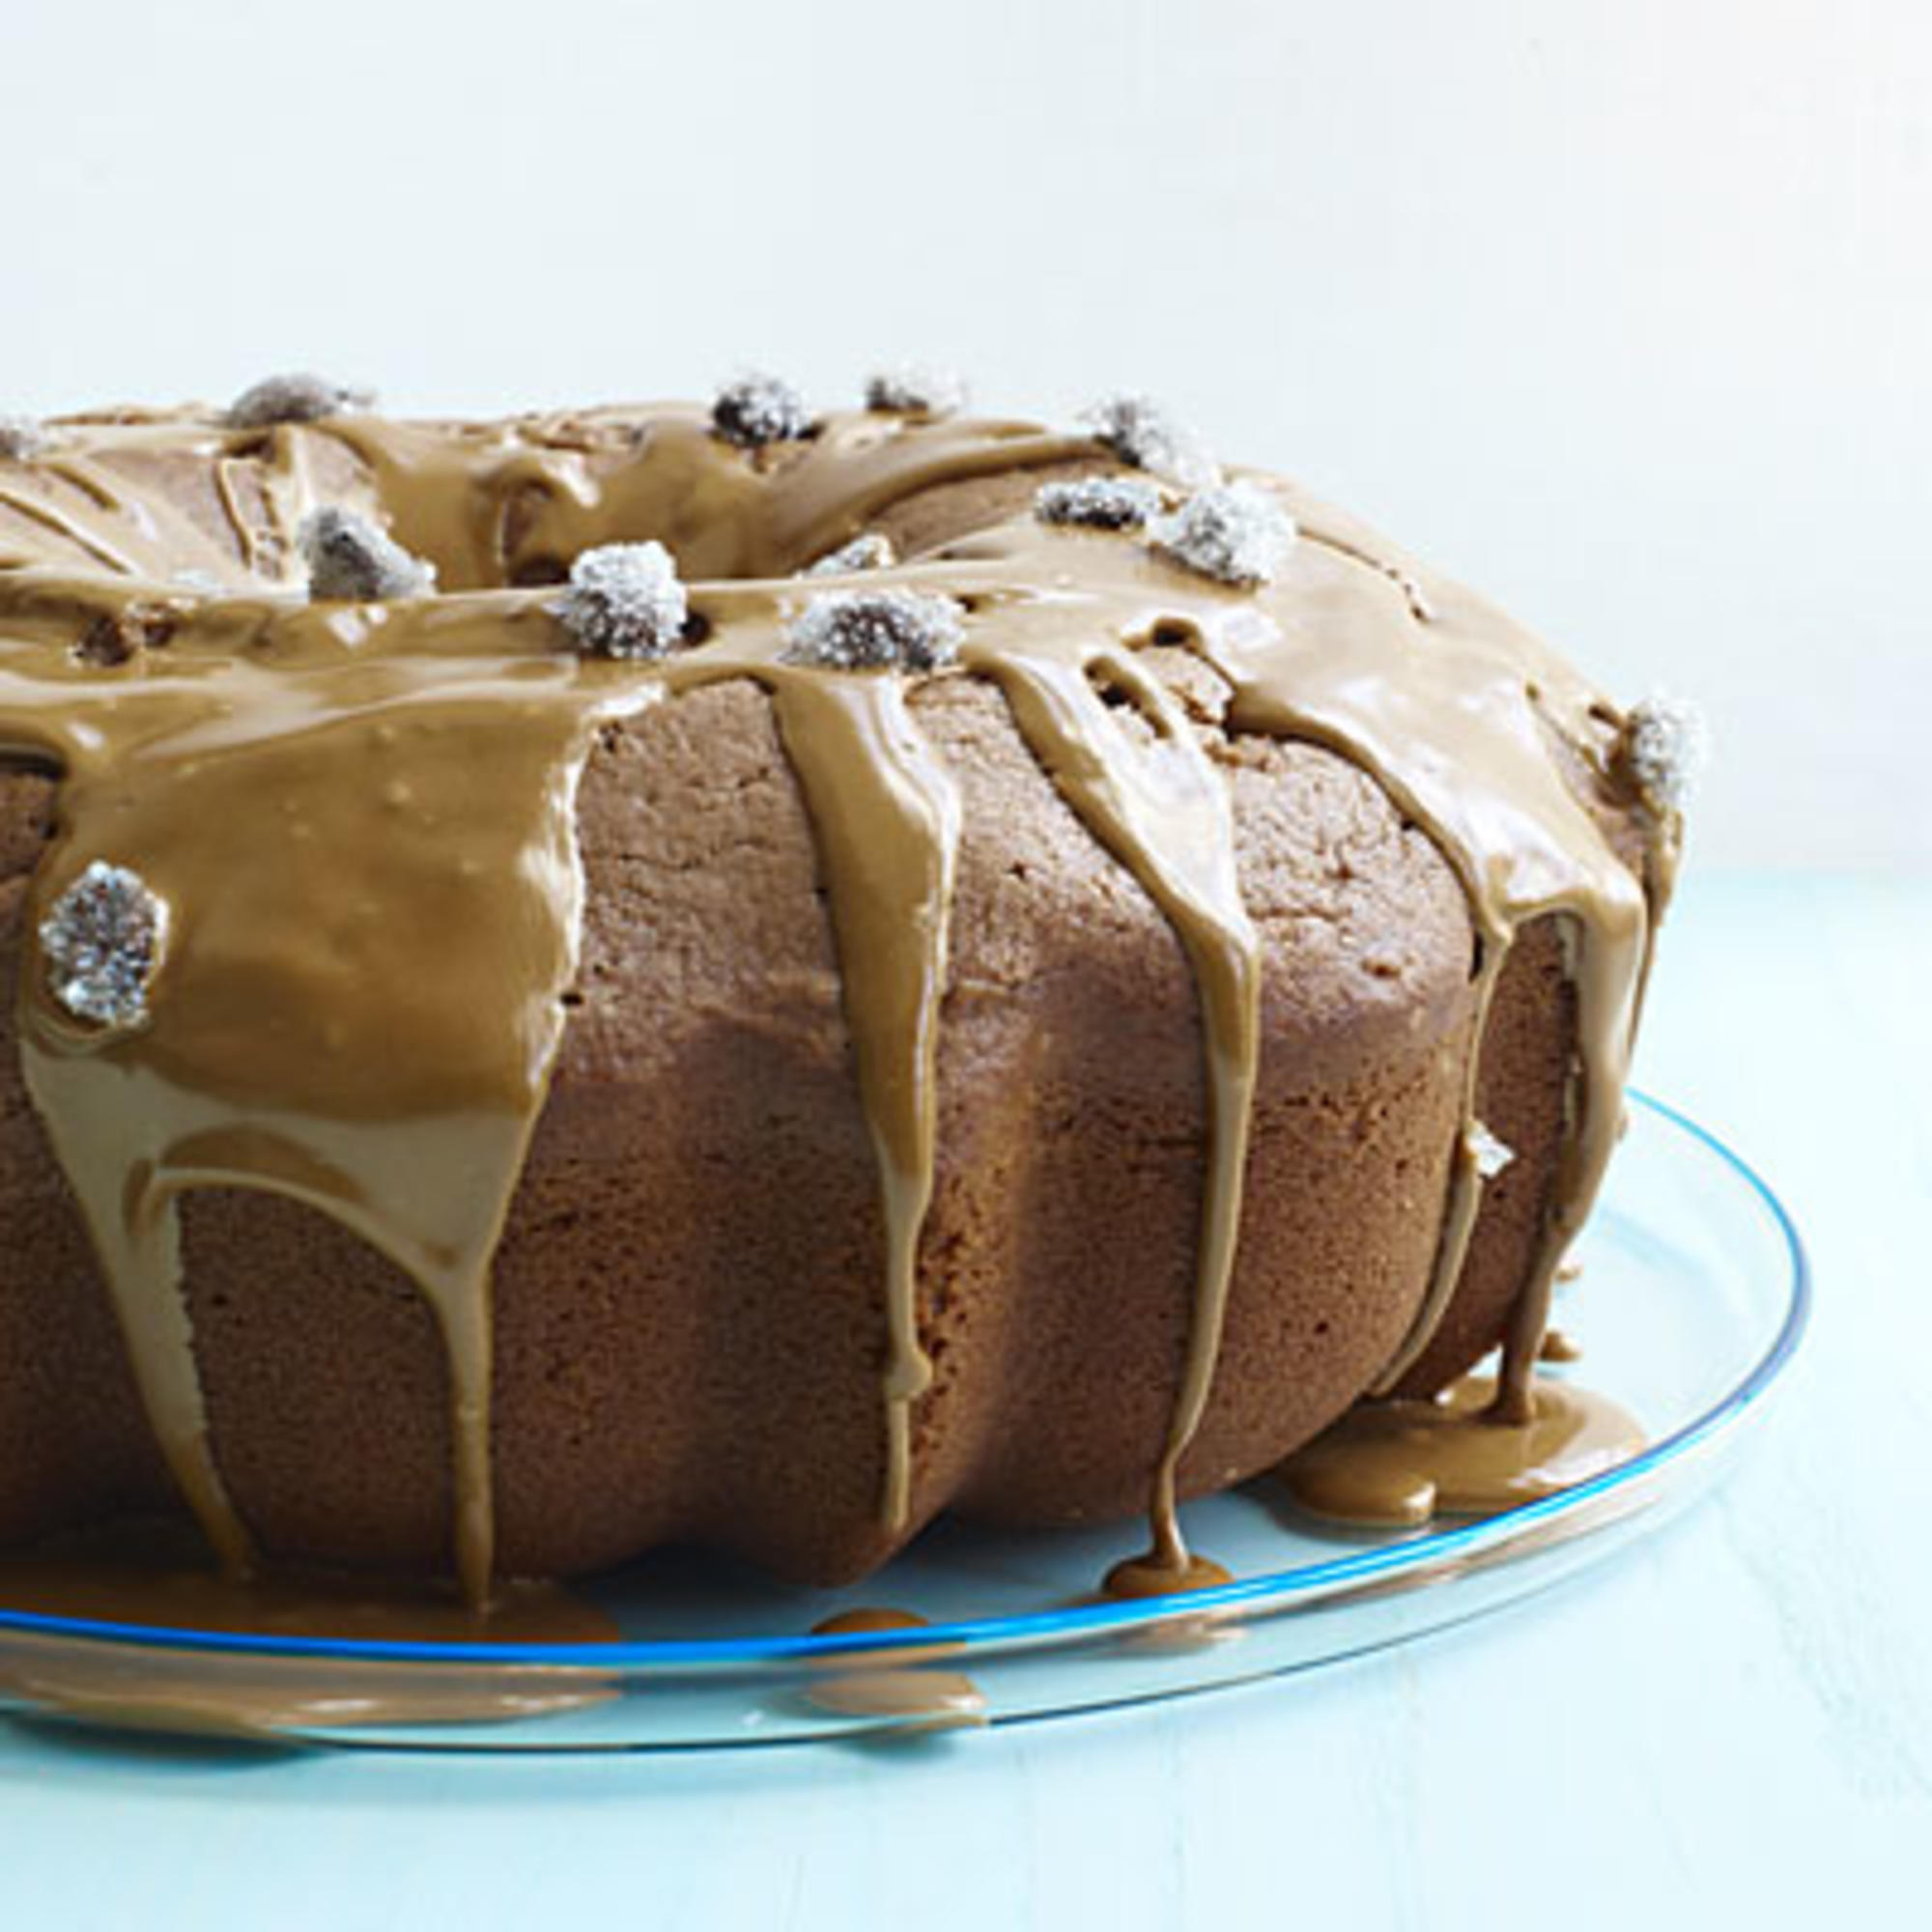 Recipe of coffee cake with icing